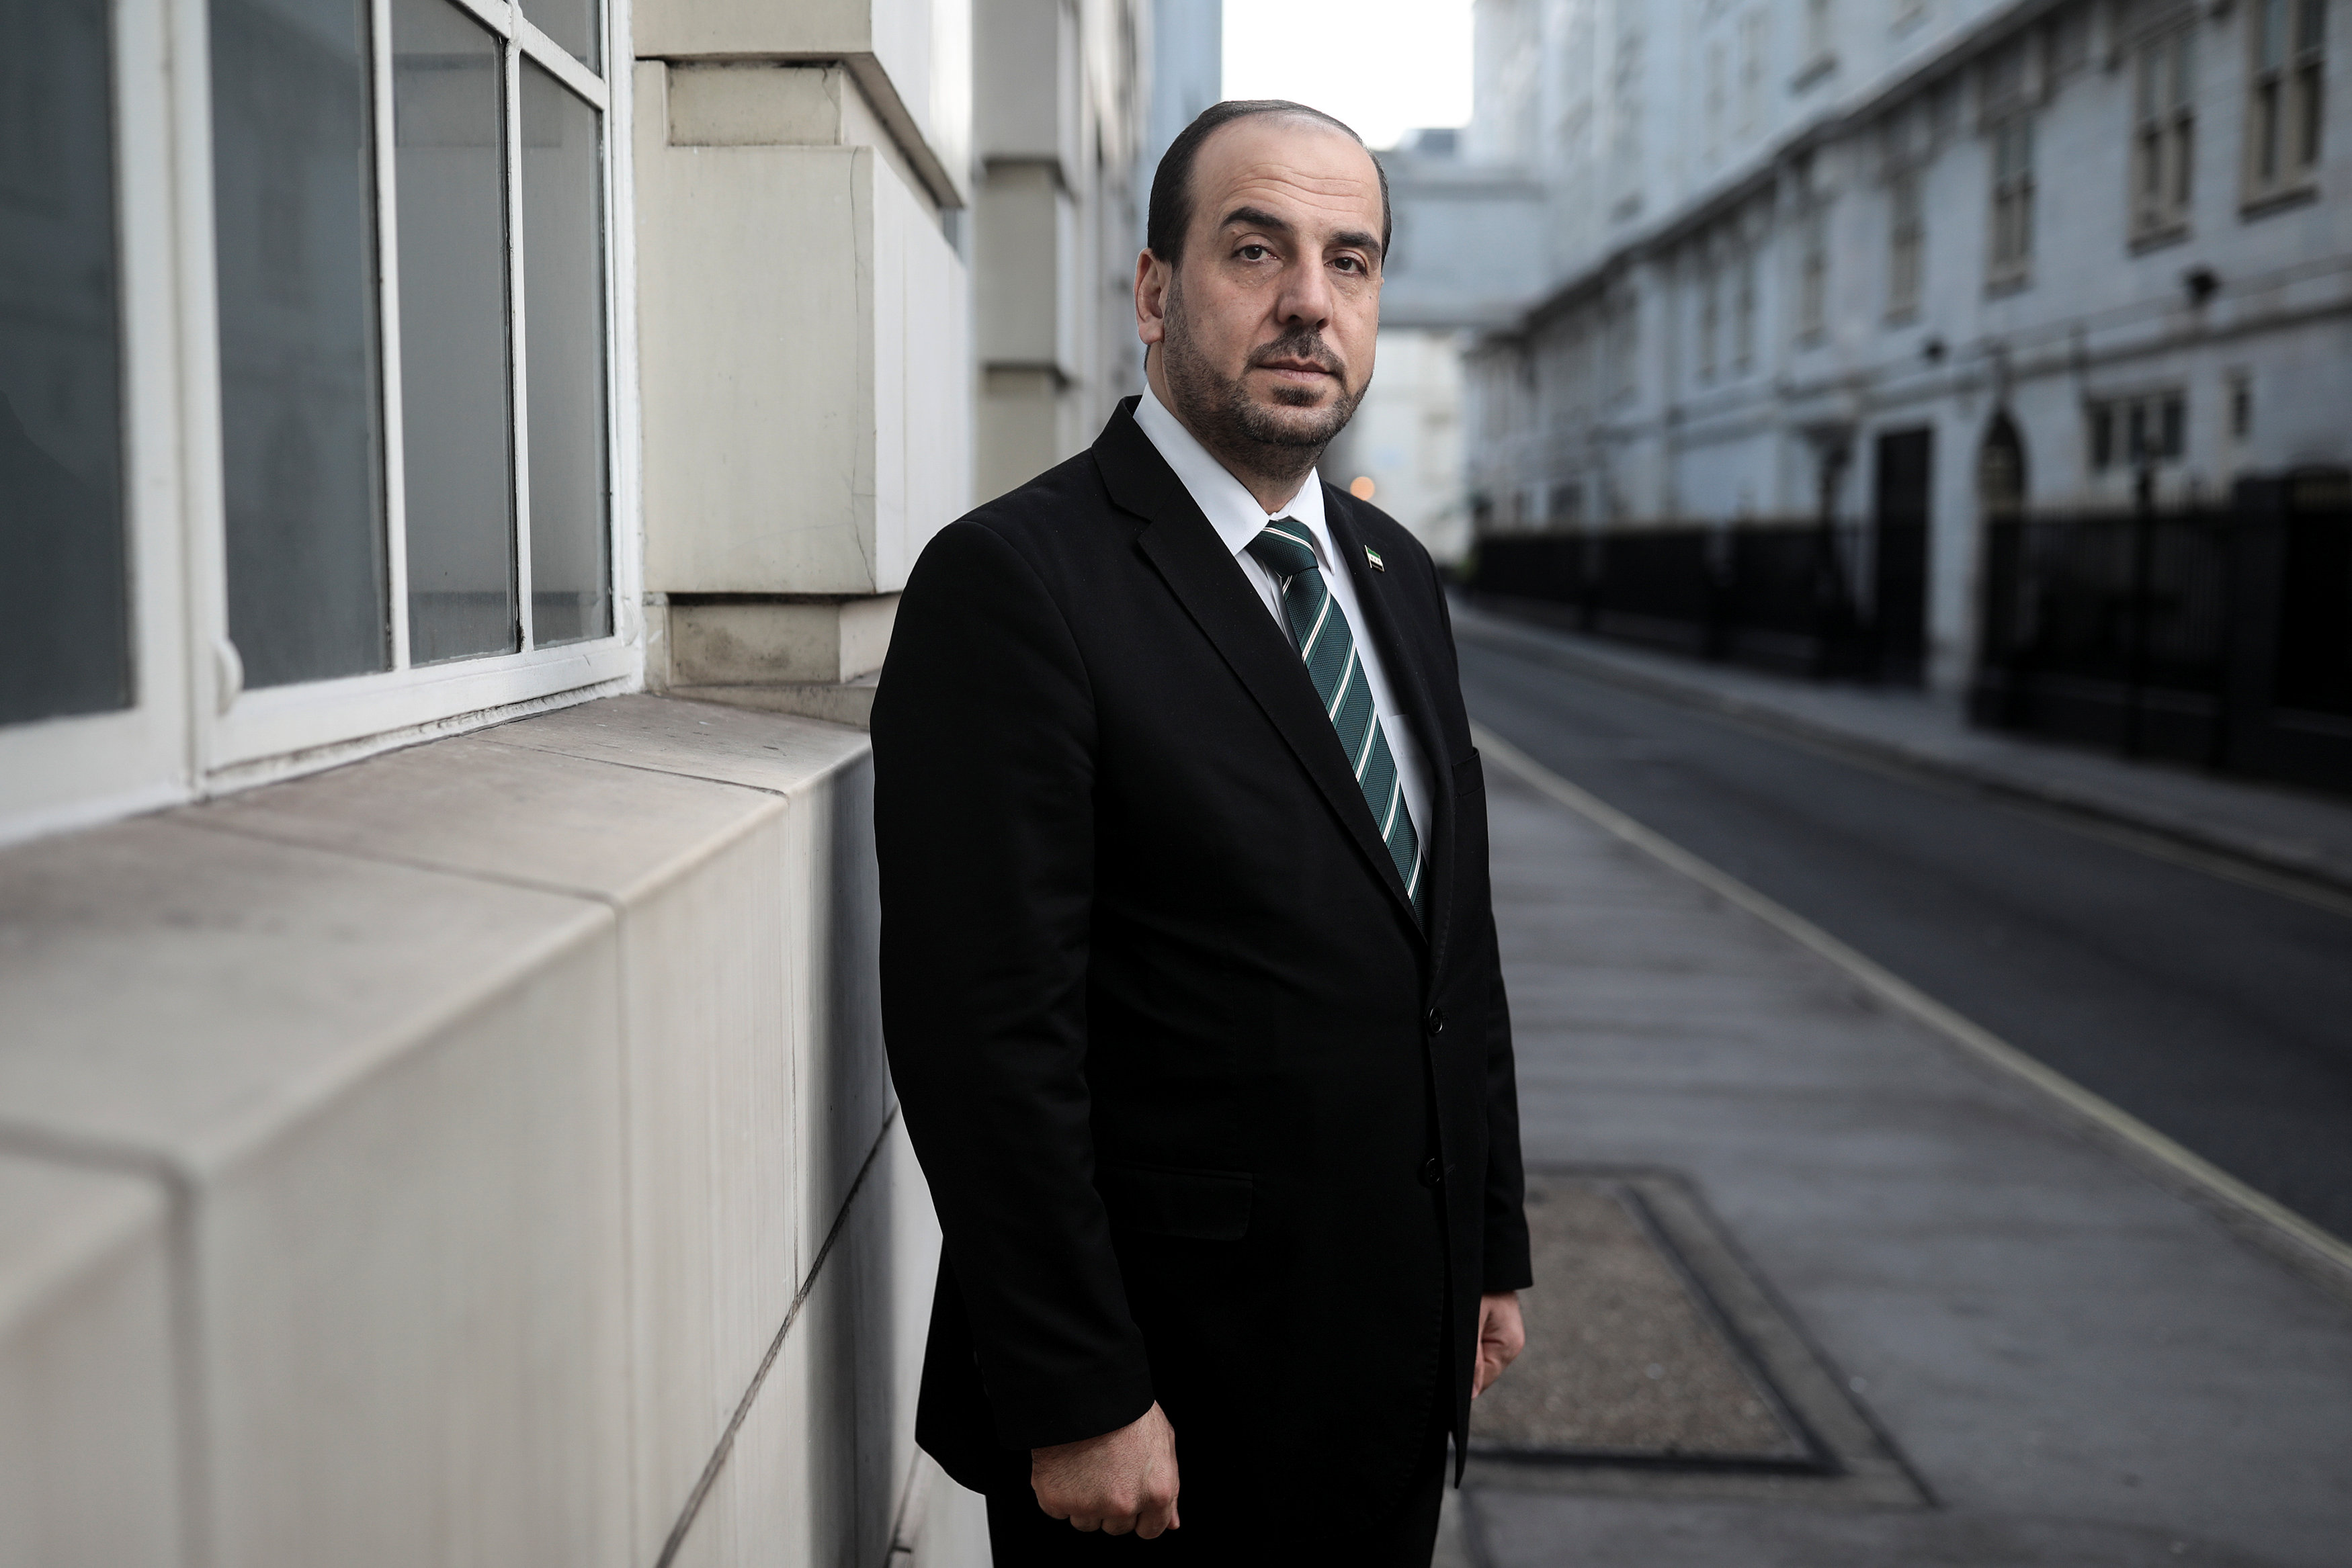 Nasr Hariri, chief negotiator for Syria's main opposition, poses for a photograph in central London, Britain January 16, 2018.